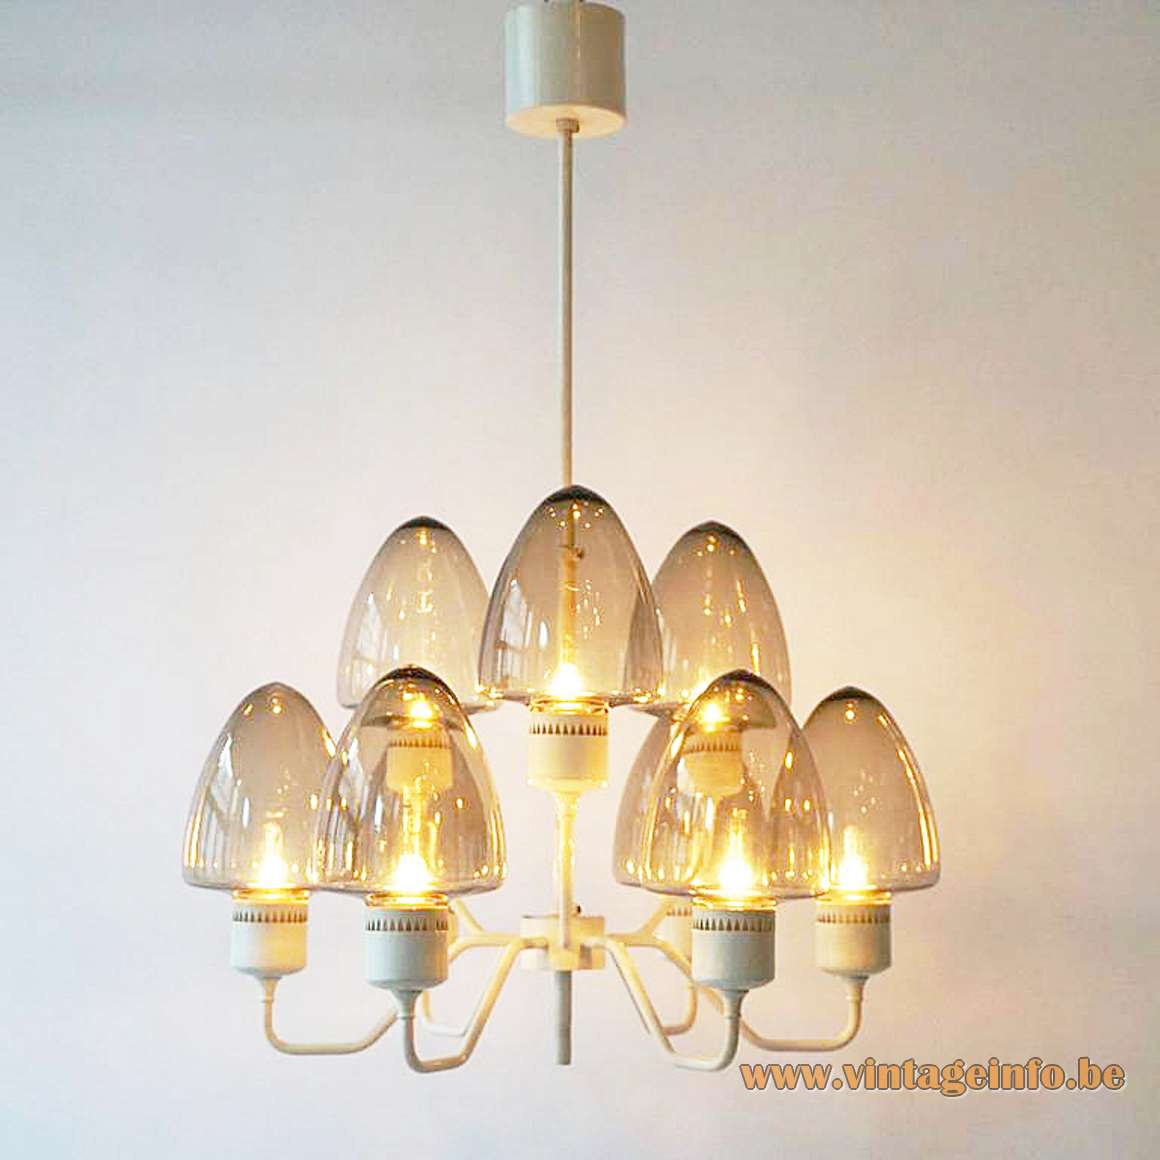 Hans-Agne Jakobsson white chandelier brass 9 smoked conical glass lampshades 9 E14 sockets